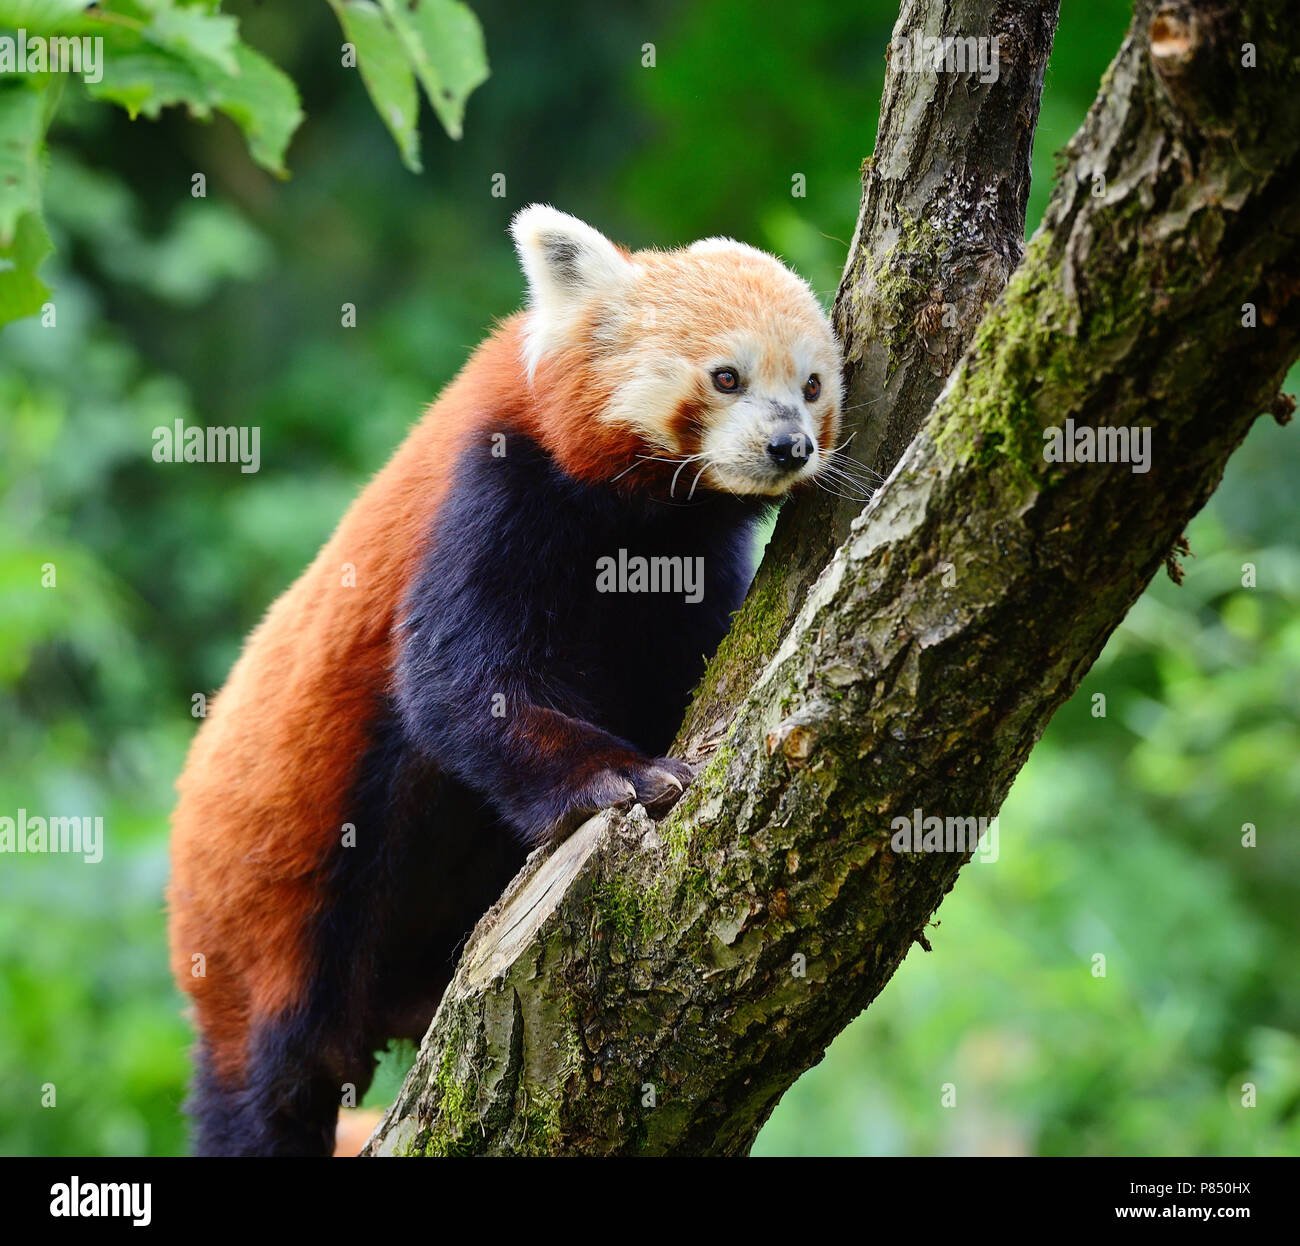 Red Panda, Firefox or Lesser Panda (Ailurus fulgens) Stock Photo